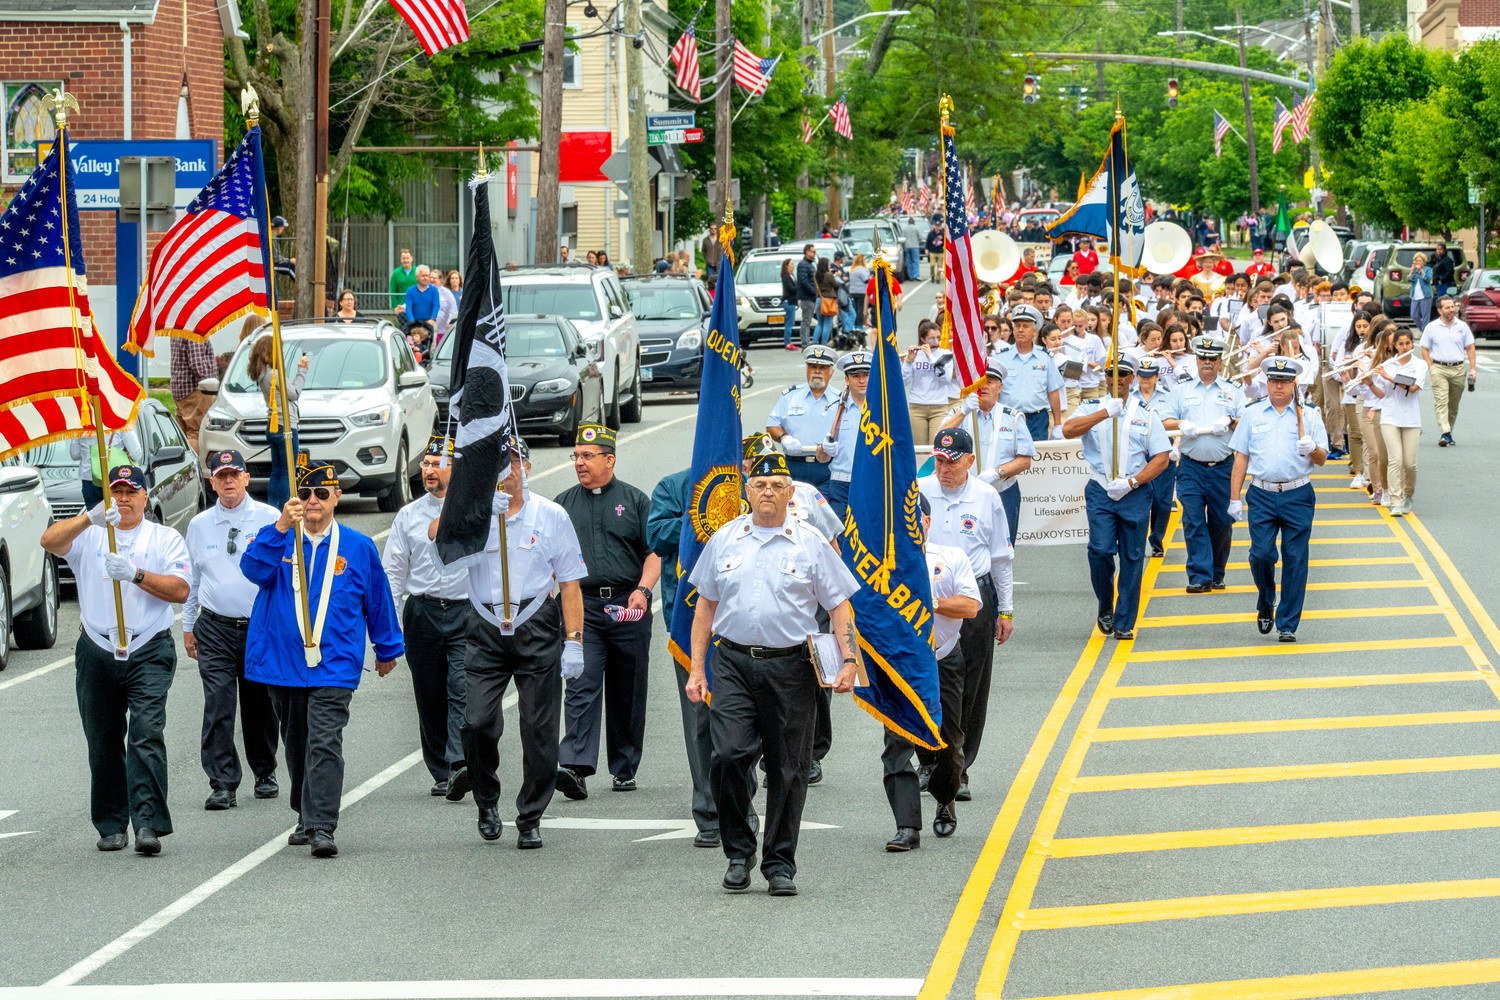 Oyster Bay Quentin Roosevelt Post 4 American Legion hosted Oyster Bay's Memorial Day Parade. Veterans from other organizations joined them at the parade.